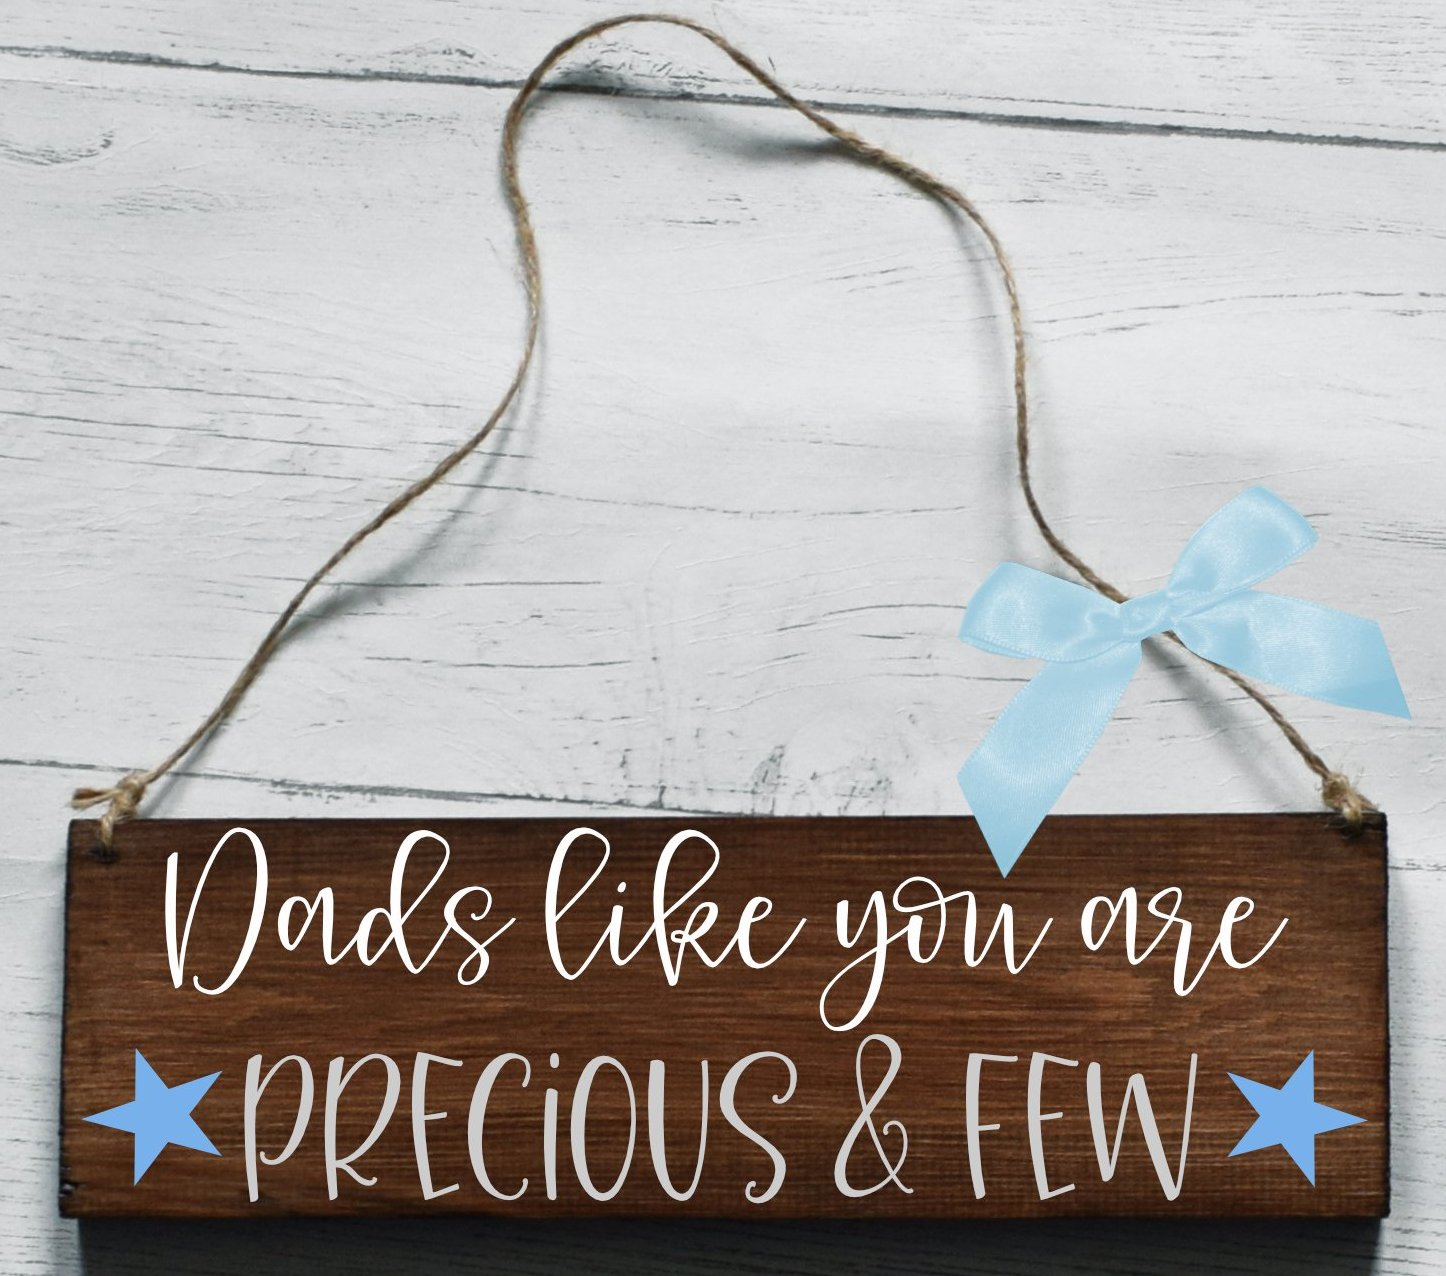 Dads Like You Are Precious And Few Wooden Plaque, Gifts For Dad, Dad Gift, Dad Plaque, Thank You Dad, Wooden Sign, Worlds Best Dad